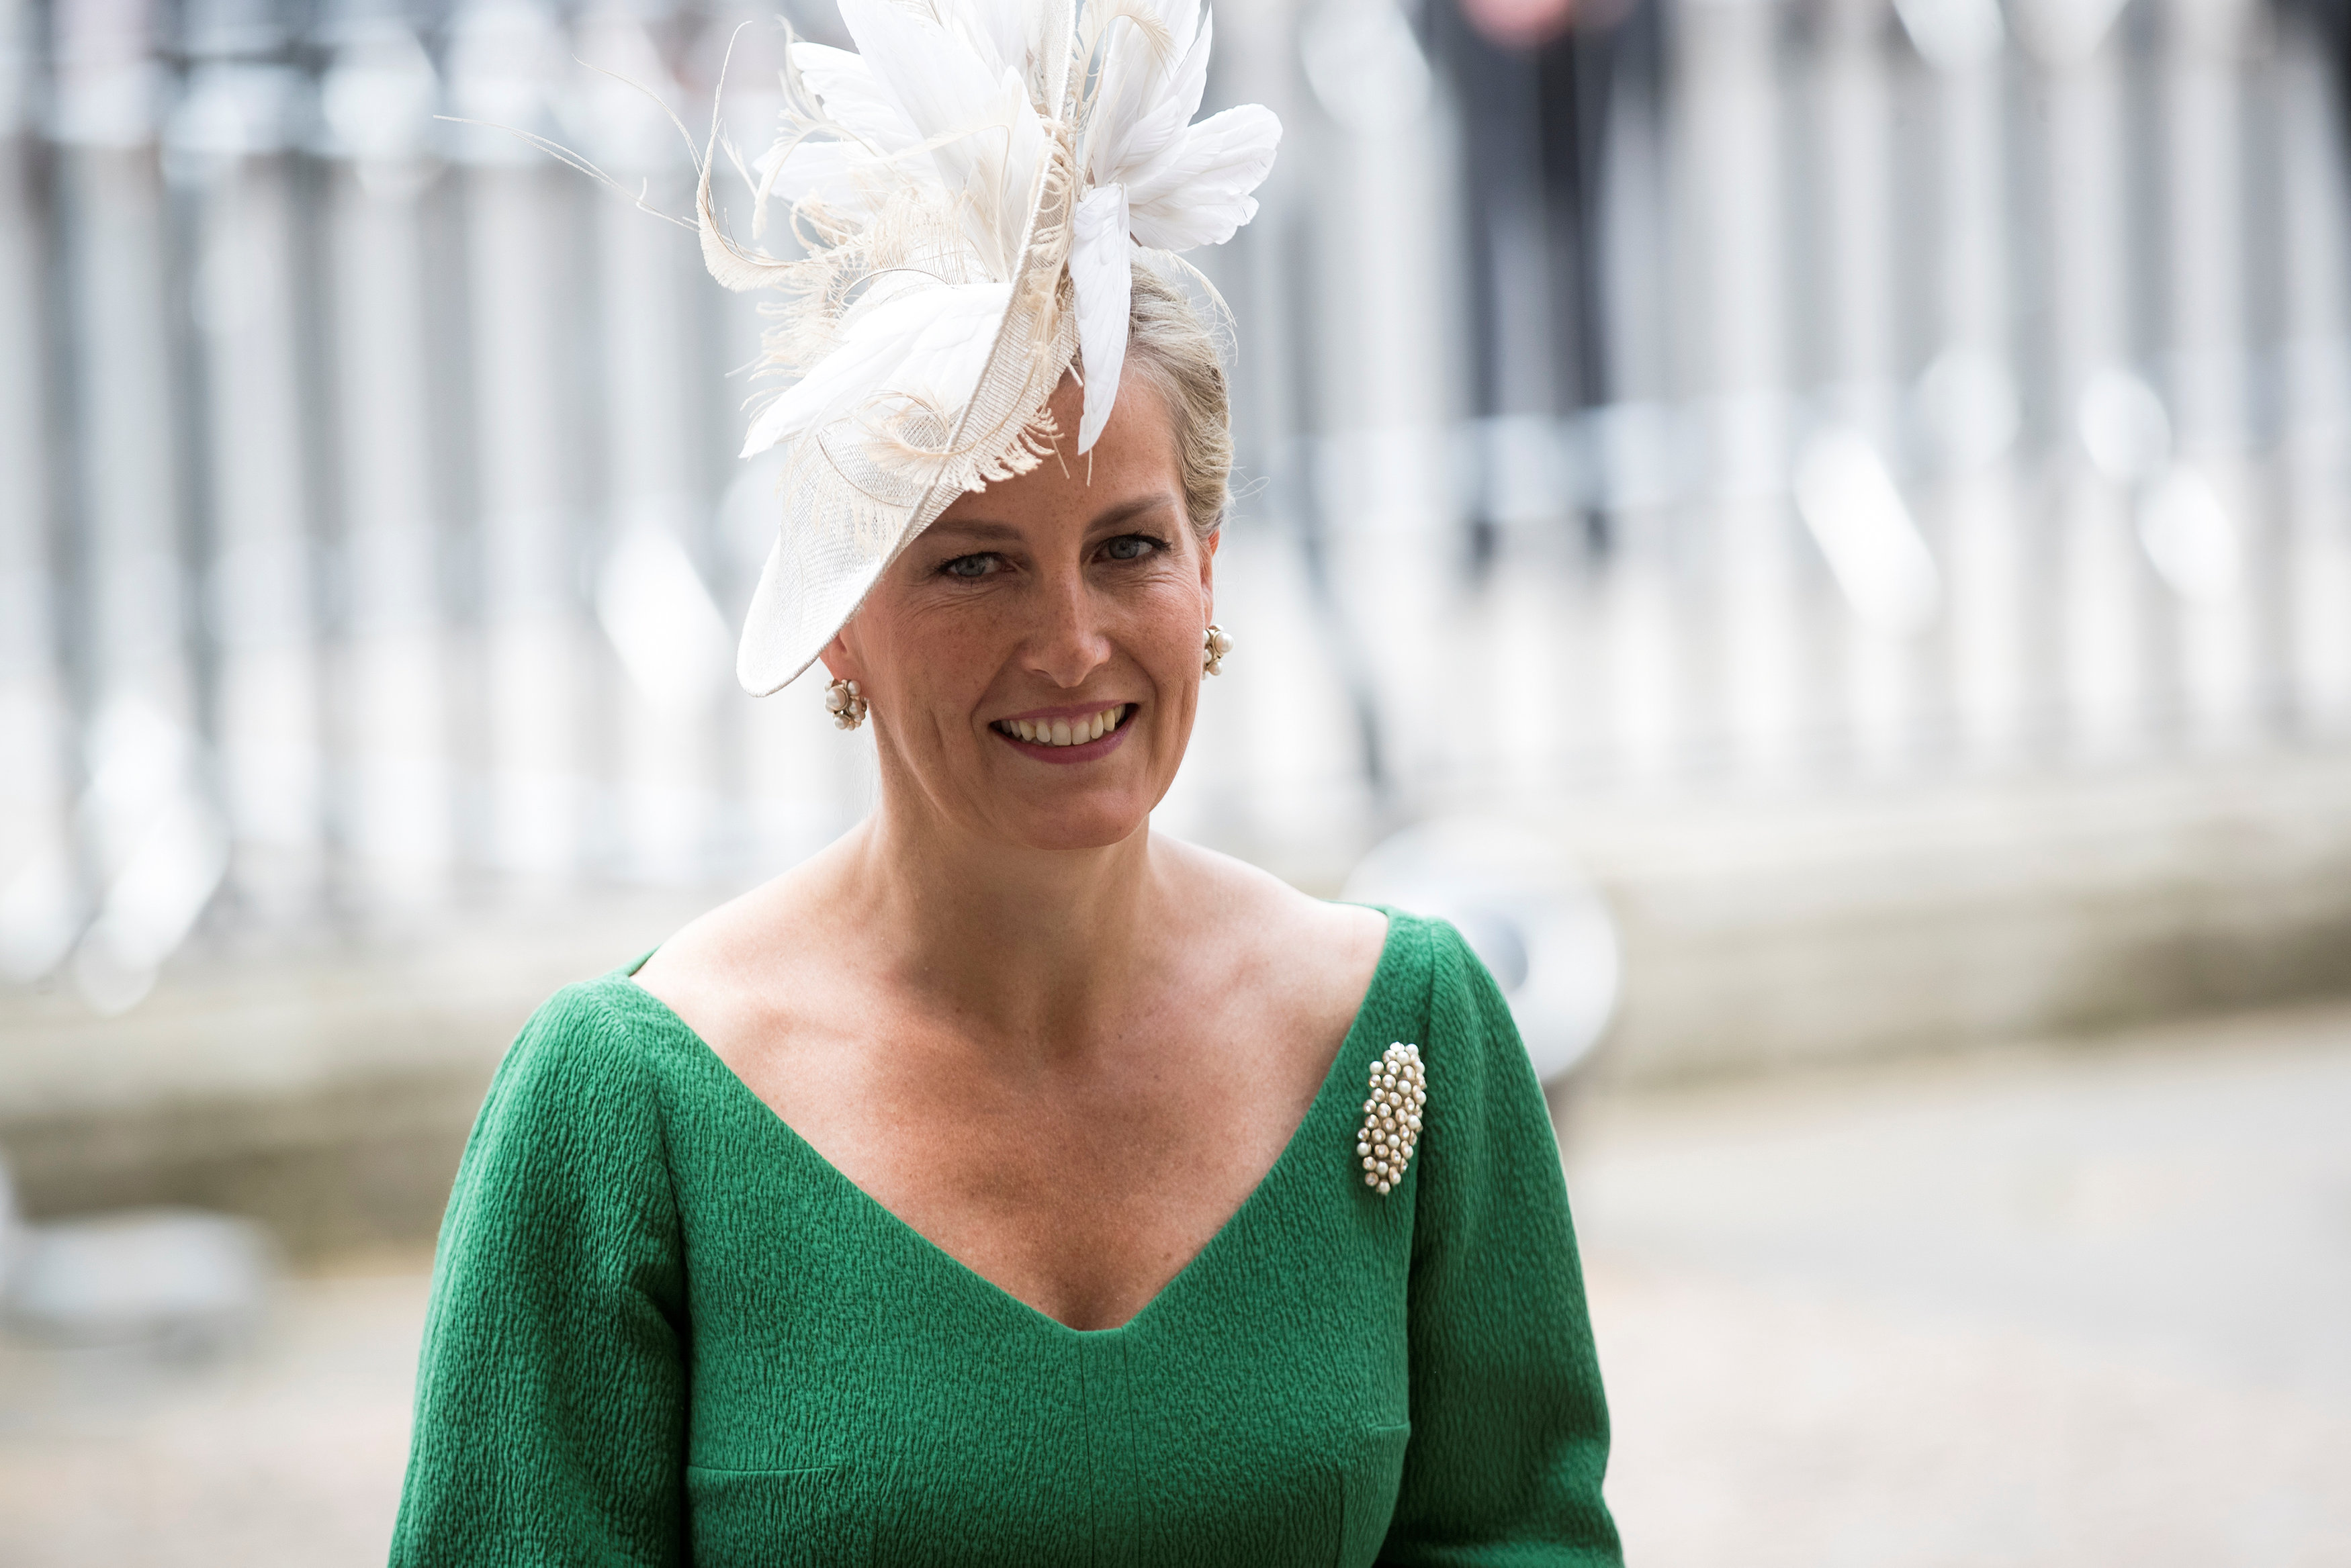 Britain's Sophie, Countess of Wessex, arrives for a service to commemorate the 70th anniversary of the National Health Service (NHS) at Westminster Abbey in London